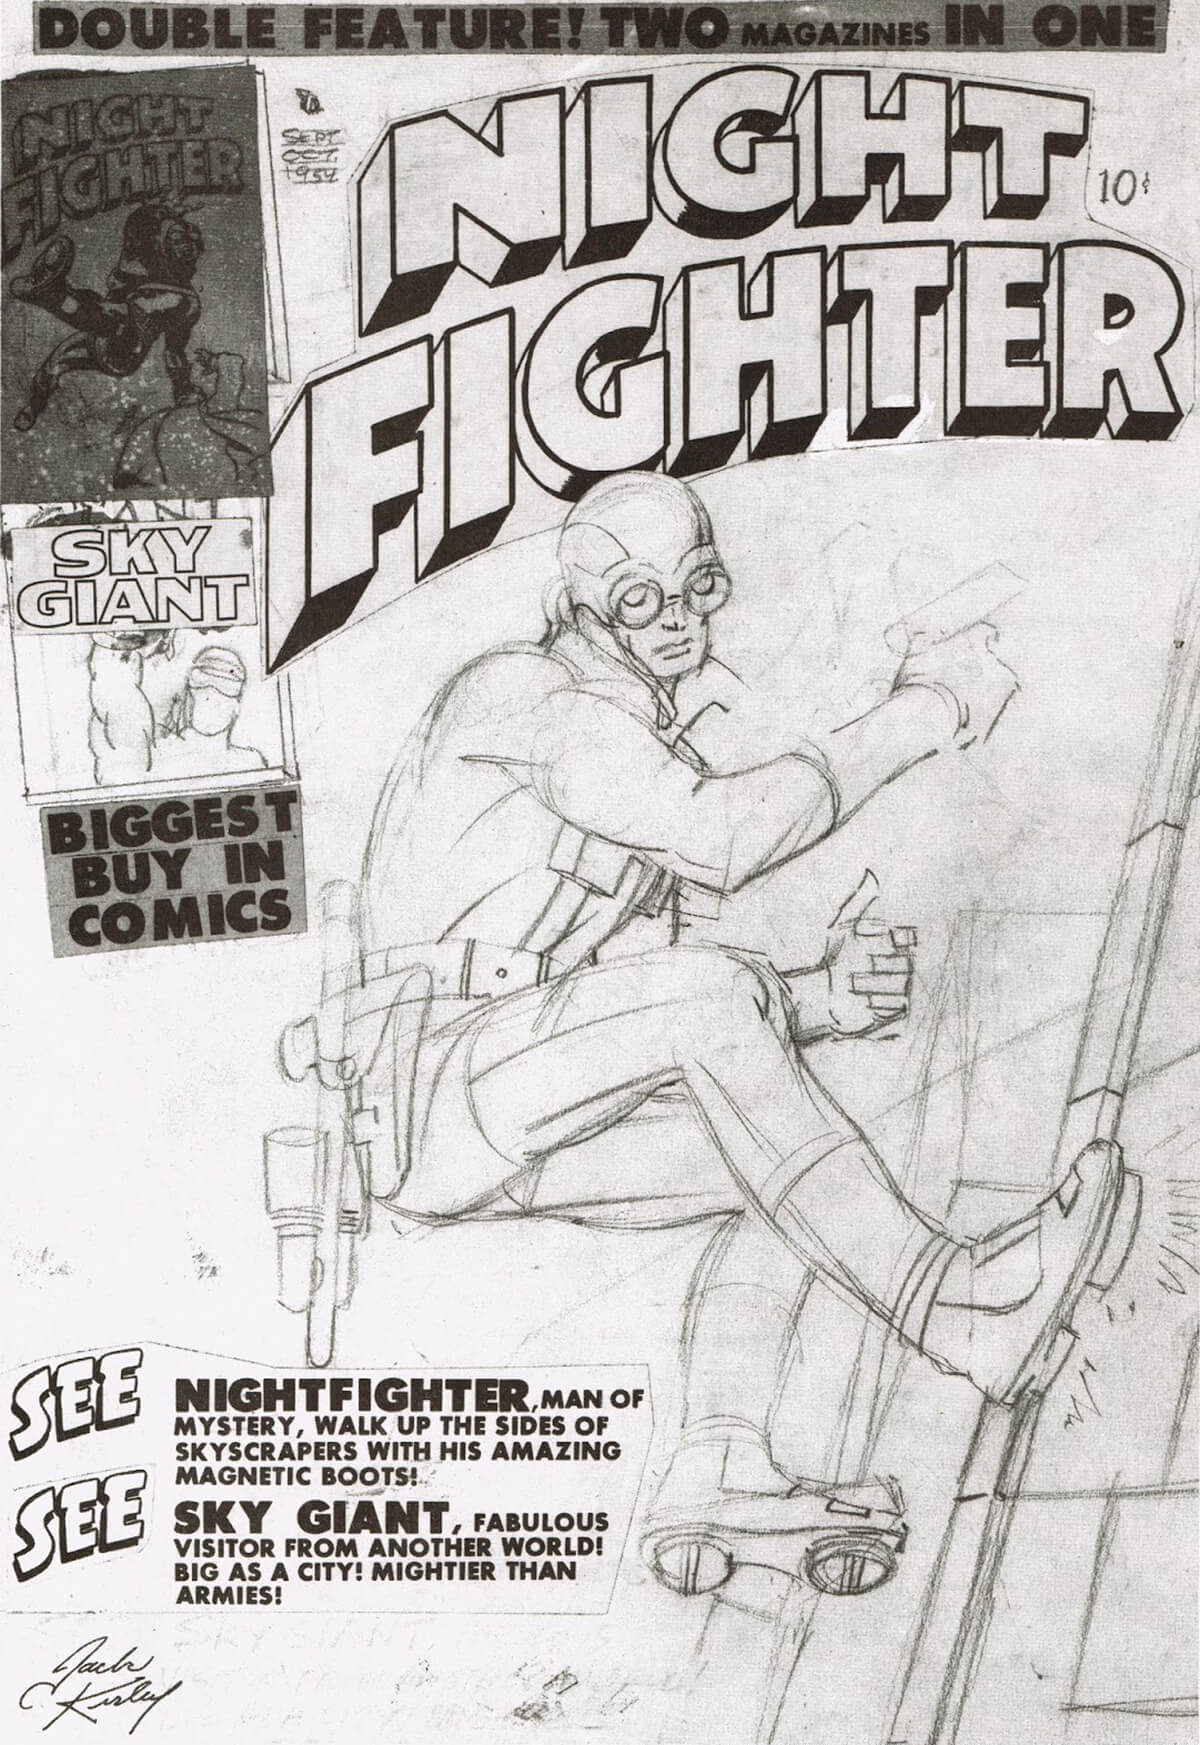 Night Fighter by Jack Kirby